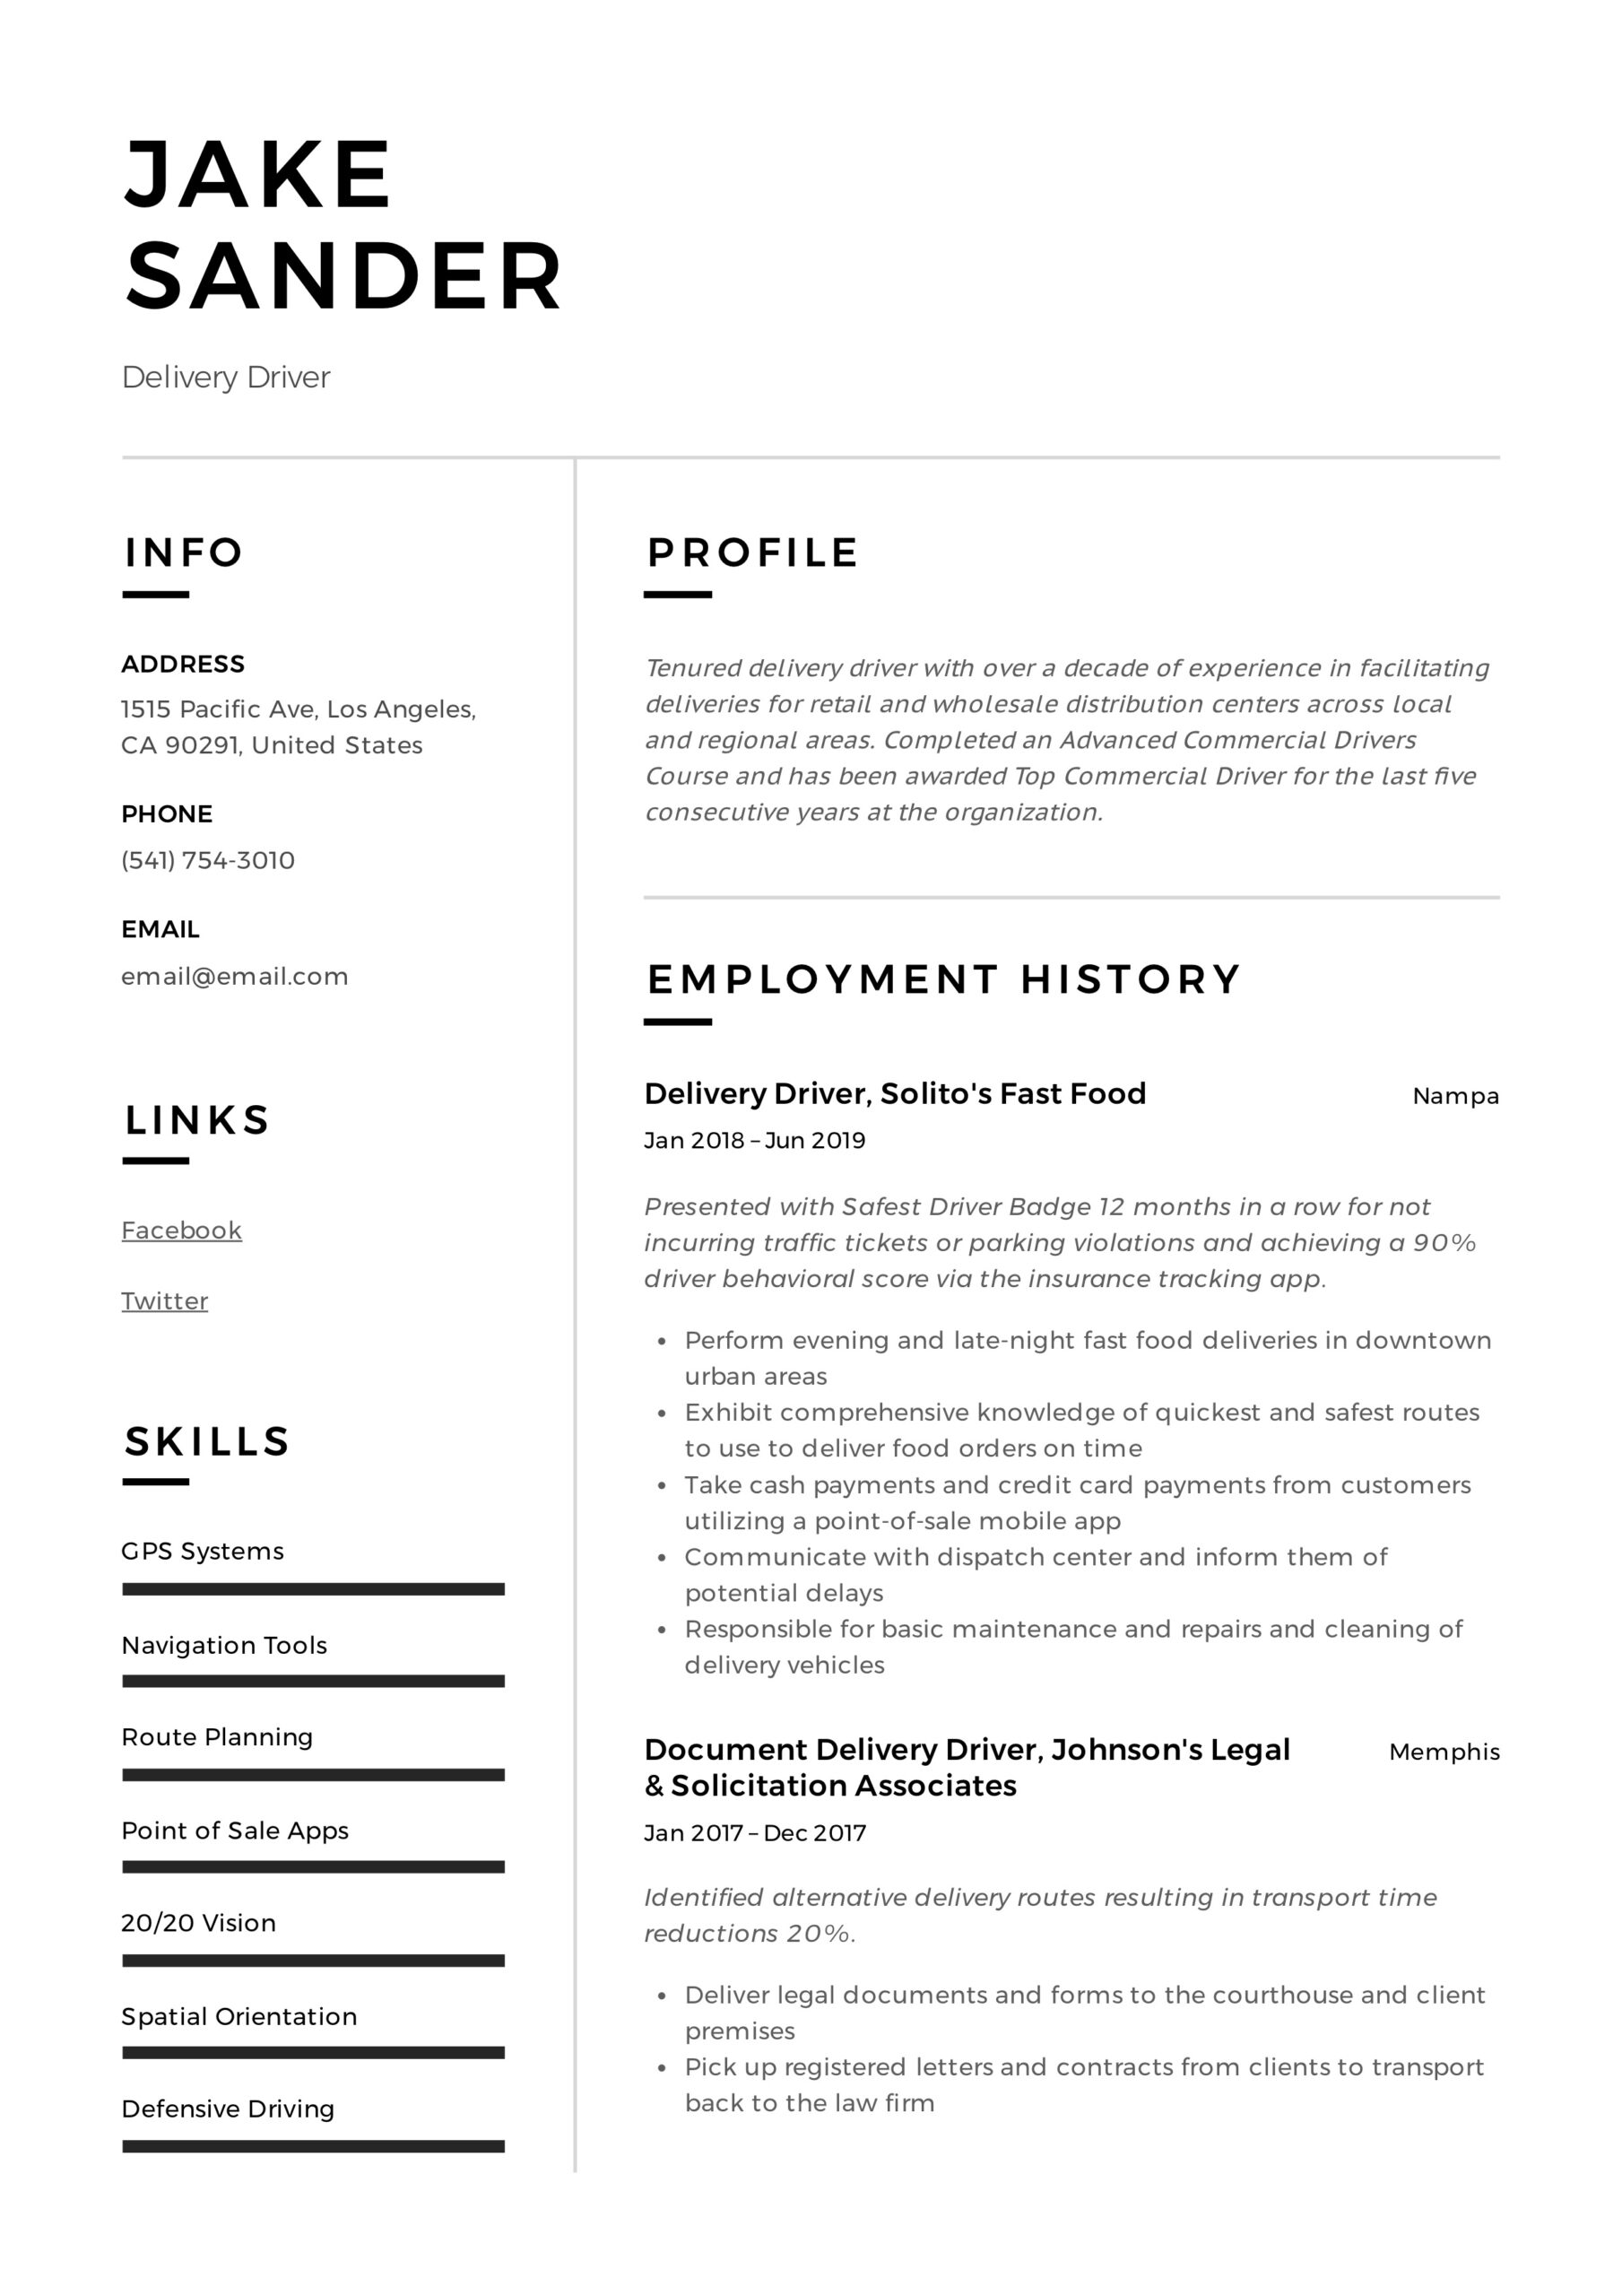 delivery driver resume writing guide examples package example modern fedex international Resume Package Delivery Driver Resume